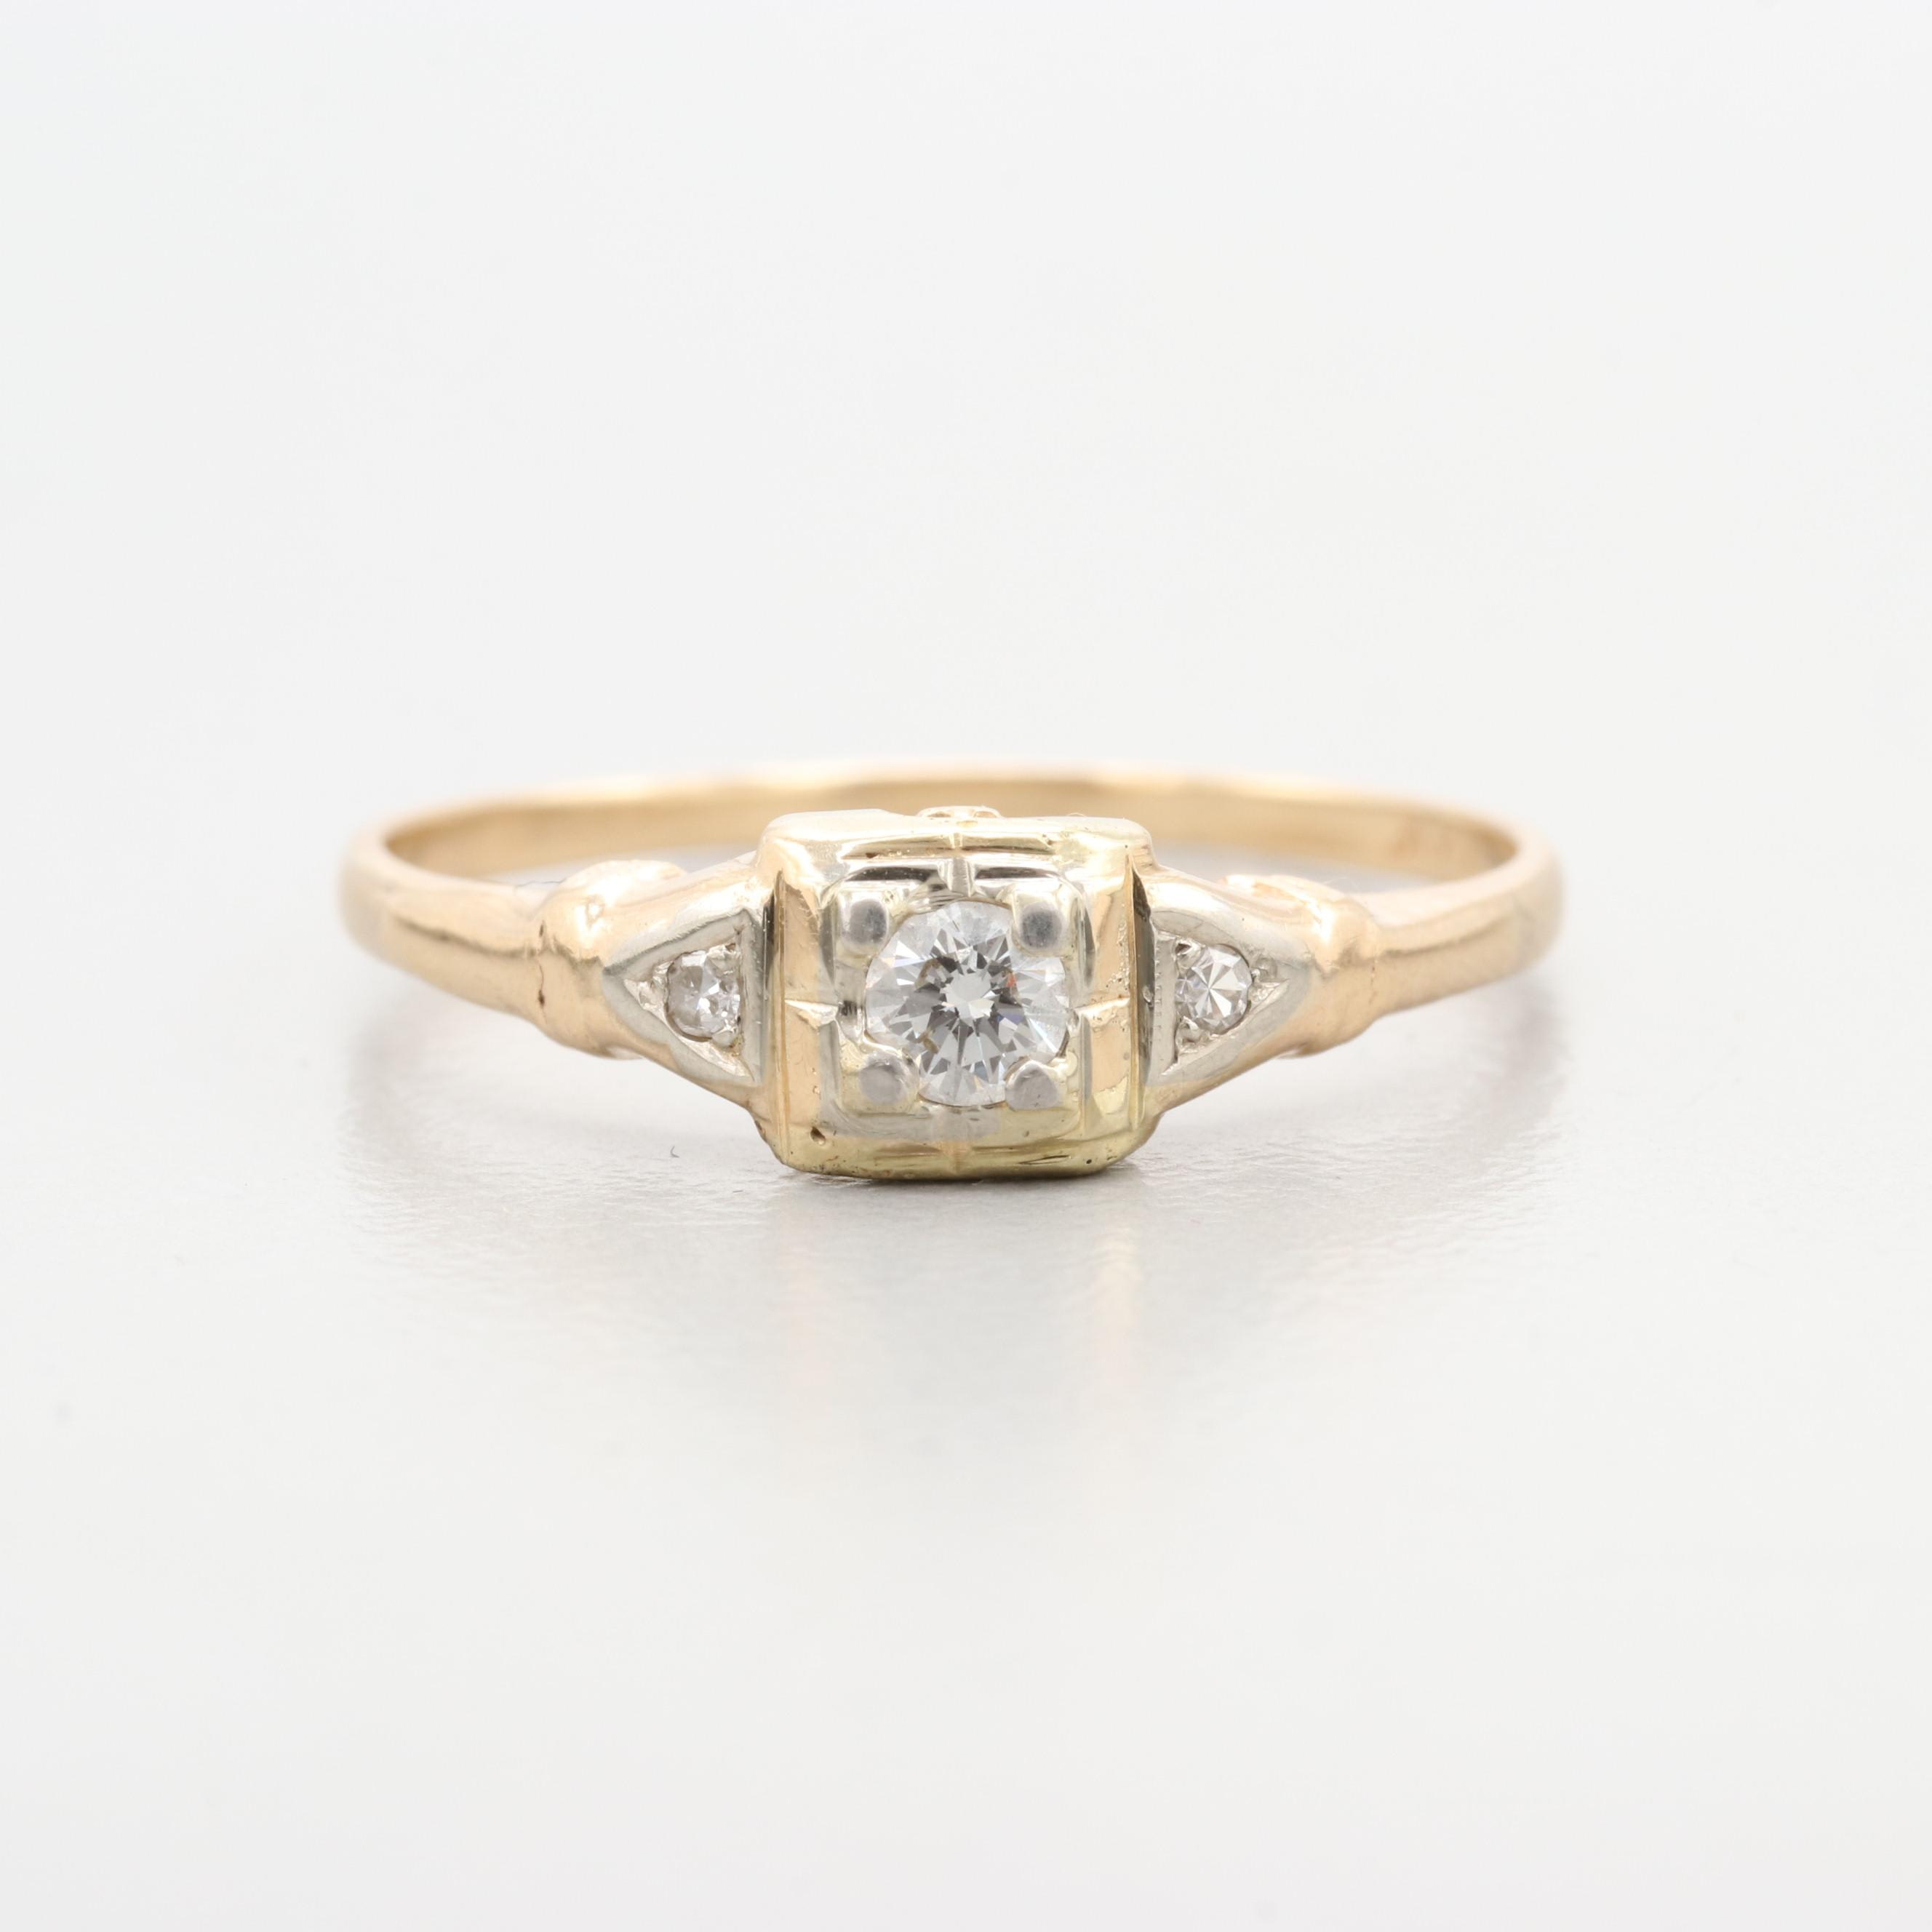 Vintage 14K Yellow Gold 0.13 CTW Diamond Ring